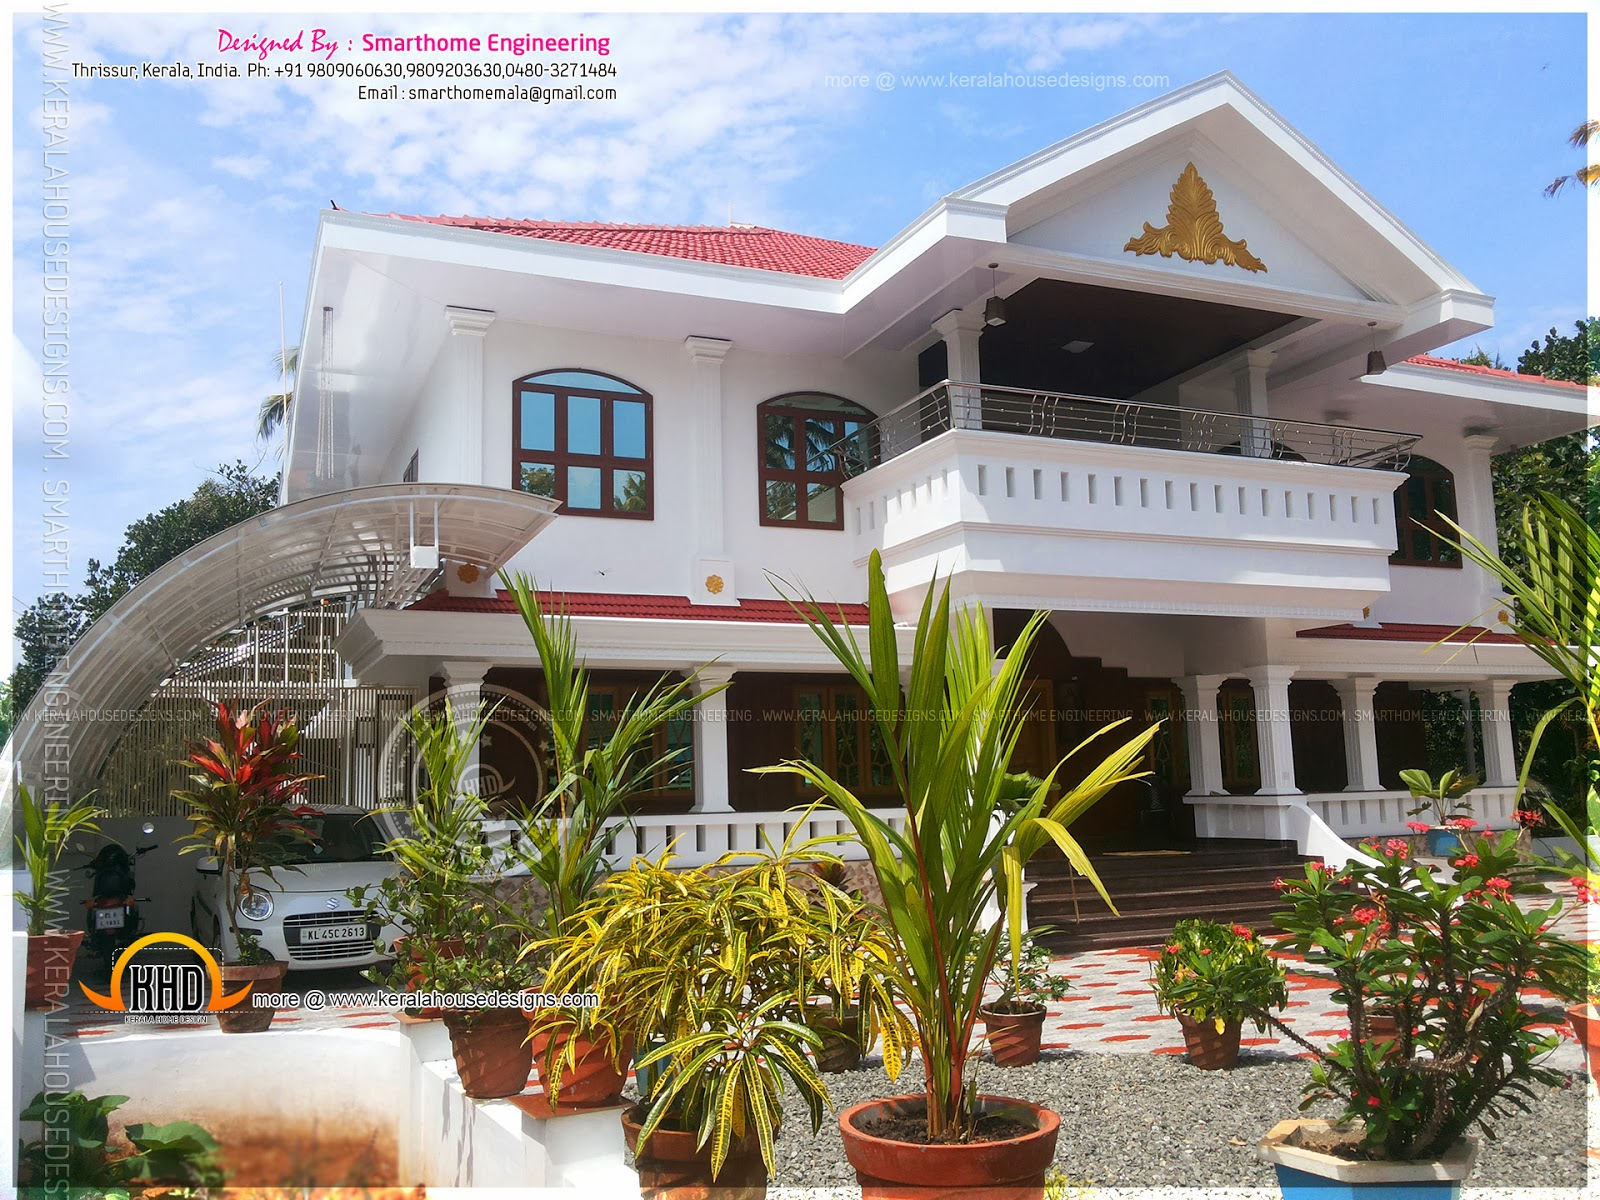 House design collection - Completed House In Thrissur Kerala